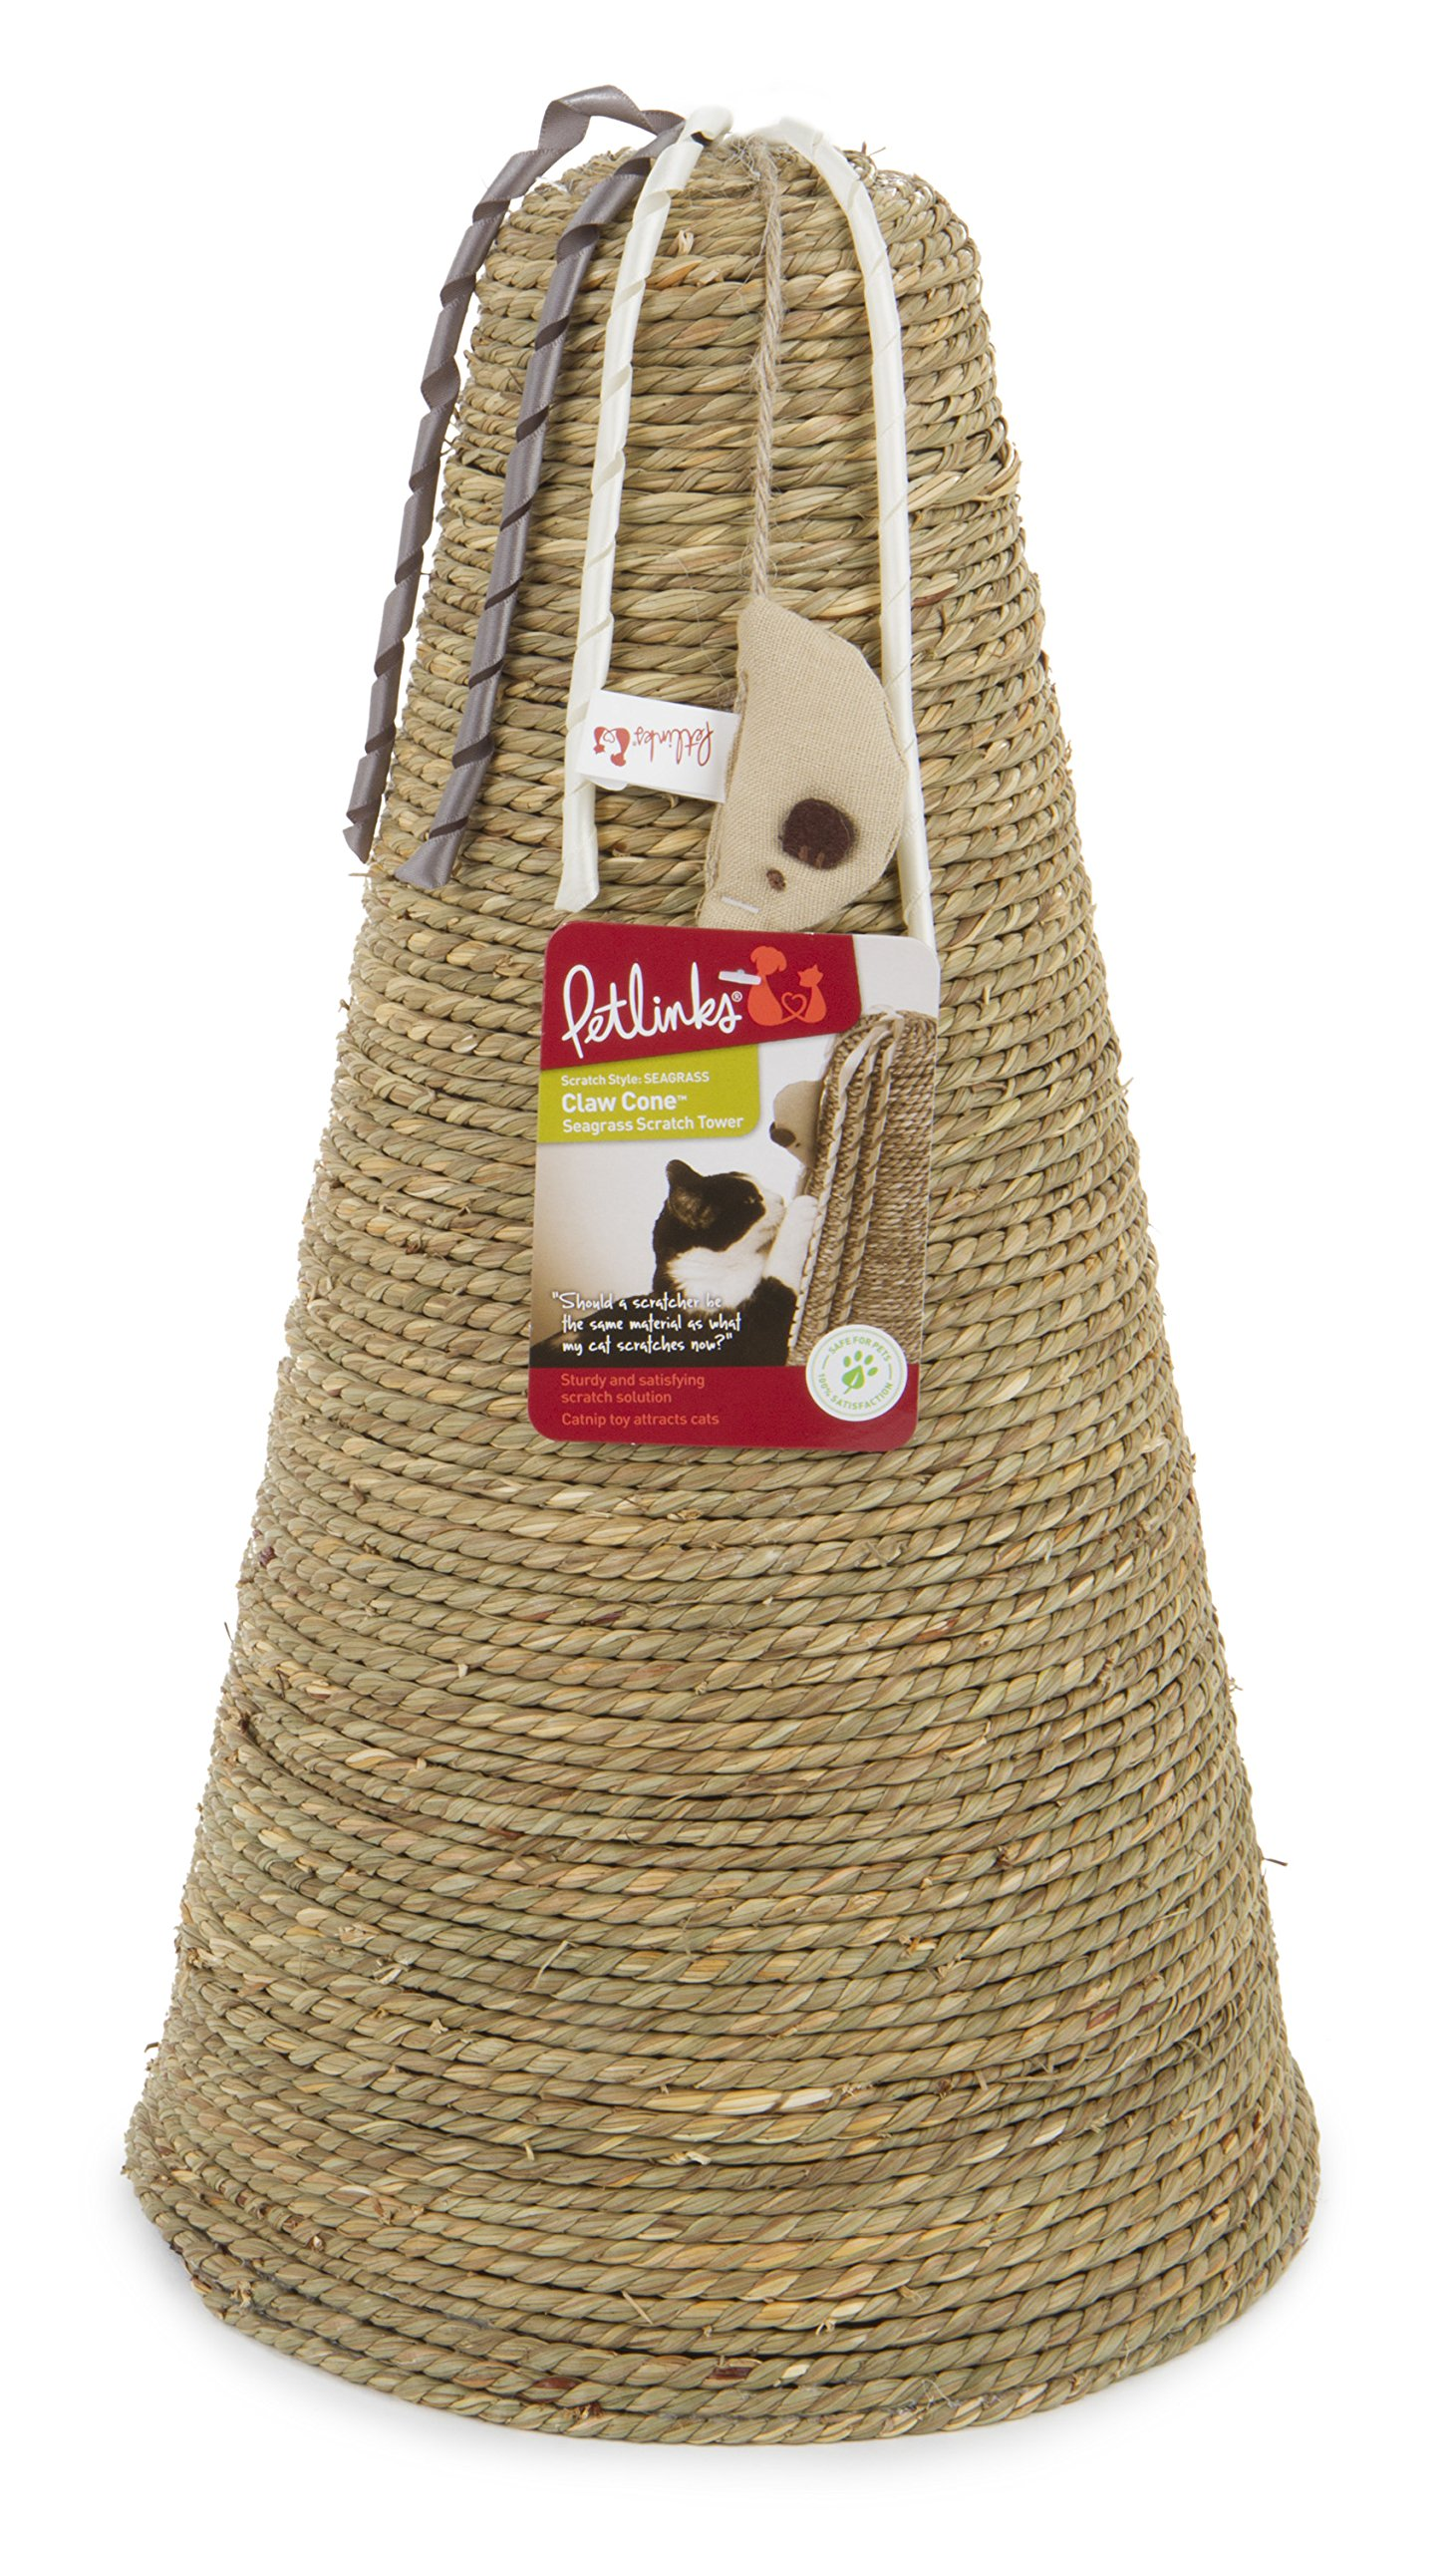 Petlinks 49207 Claw Cone Seagrass Cat Scratch Tower with Catnip Toy & Ribbons